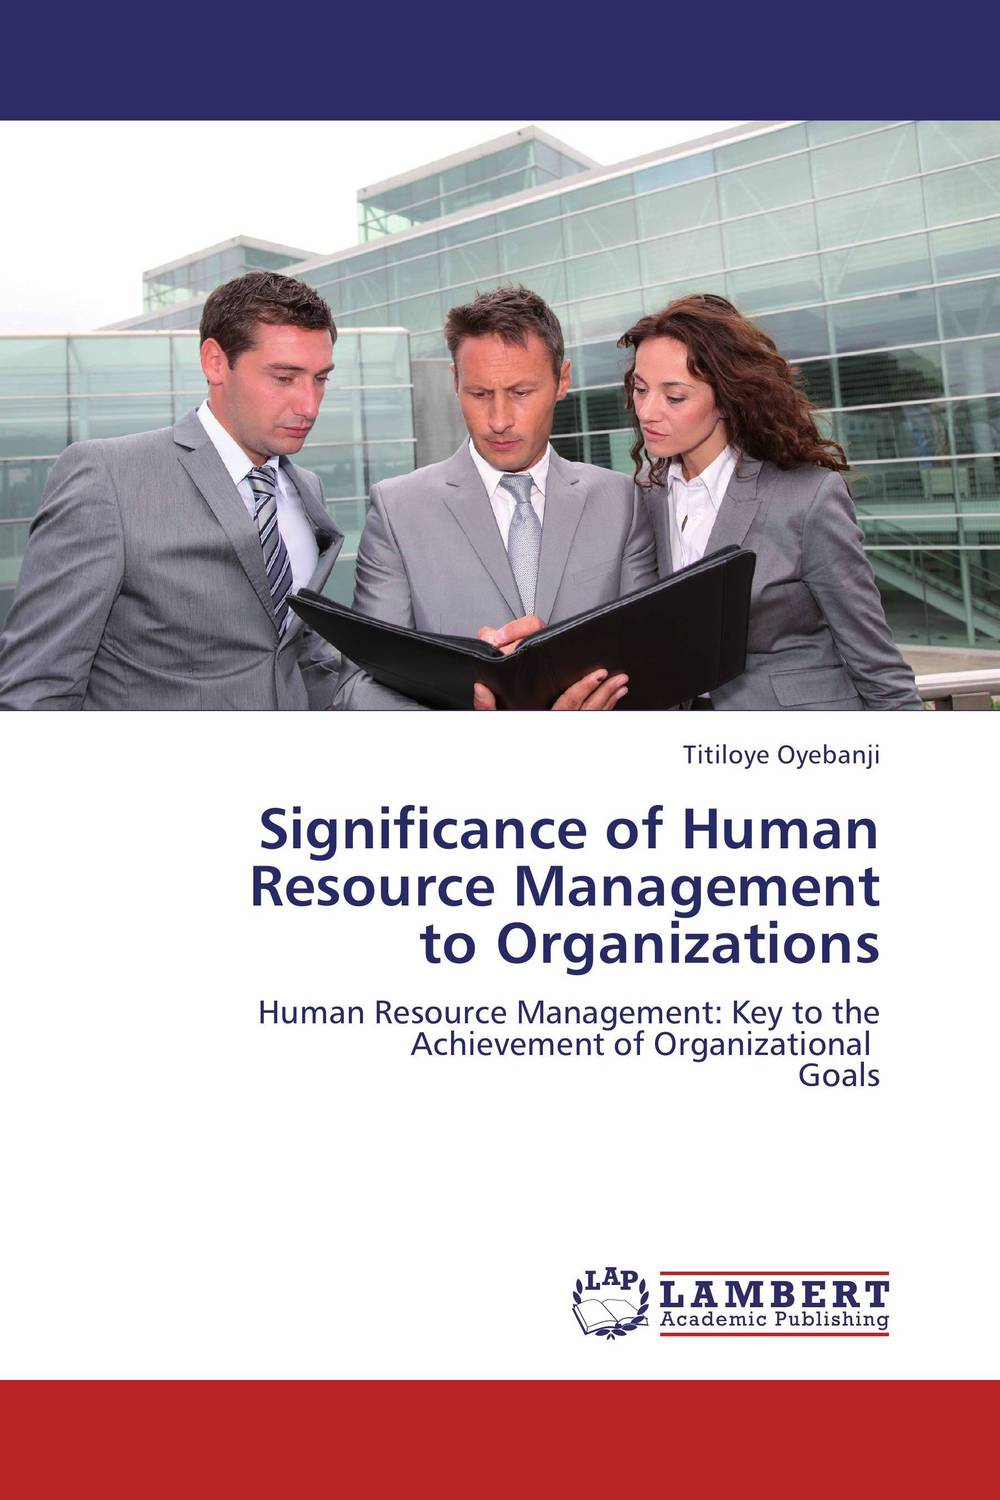 Significance of Human         Resource Management  to Organizations significance of human resource management to organizations page 4